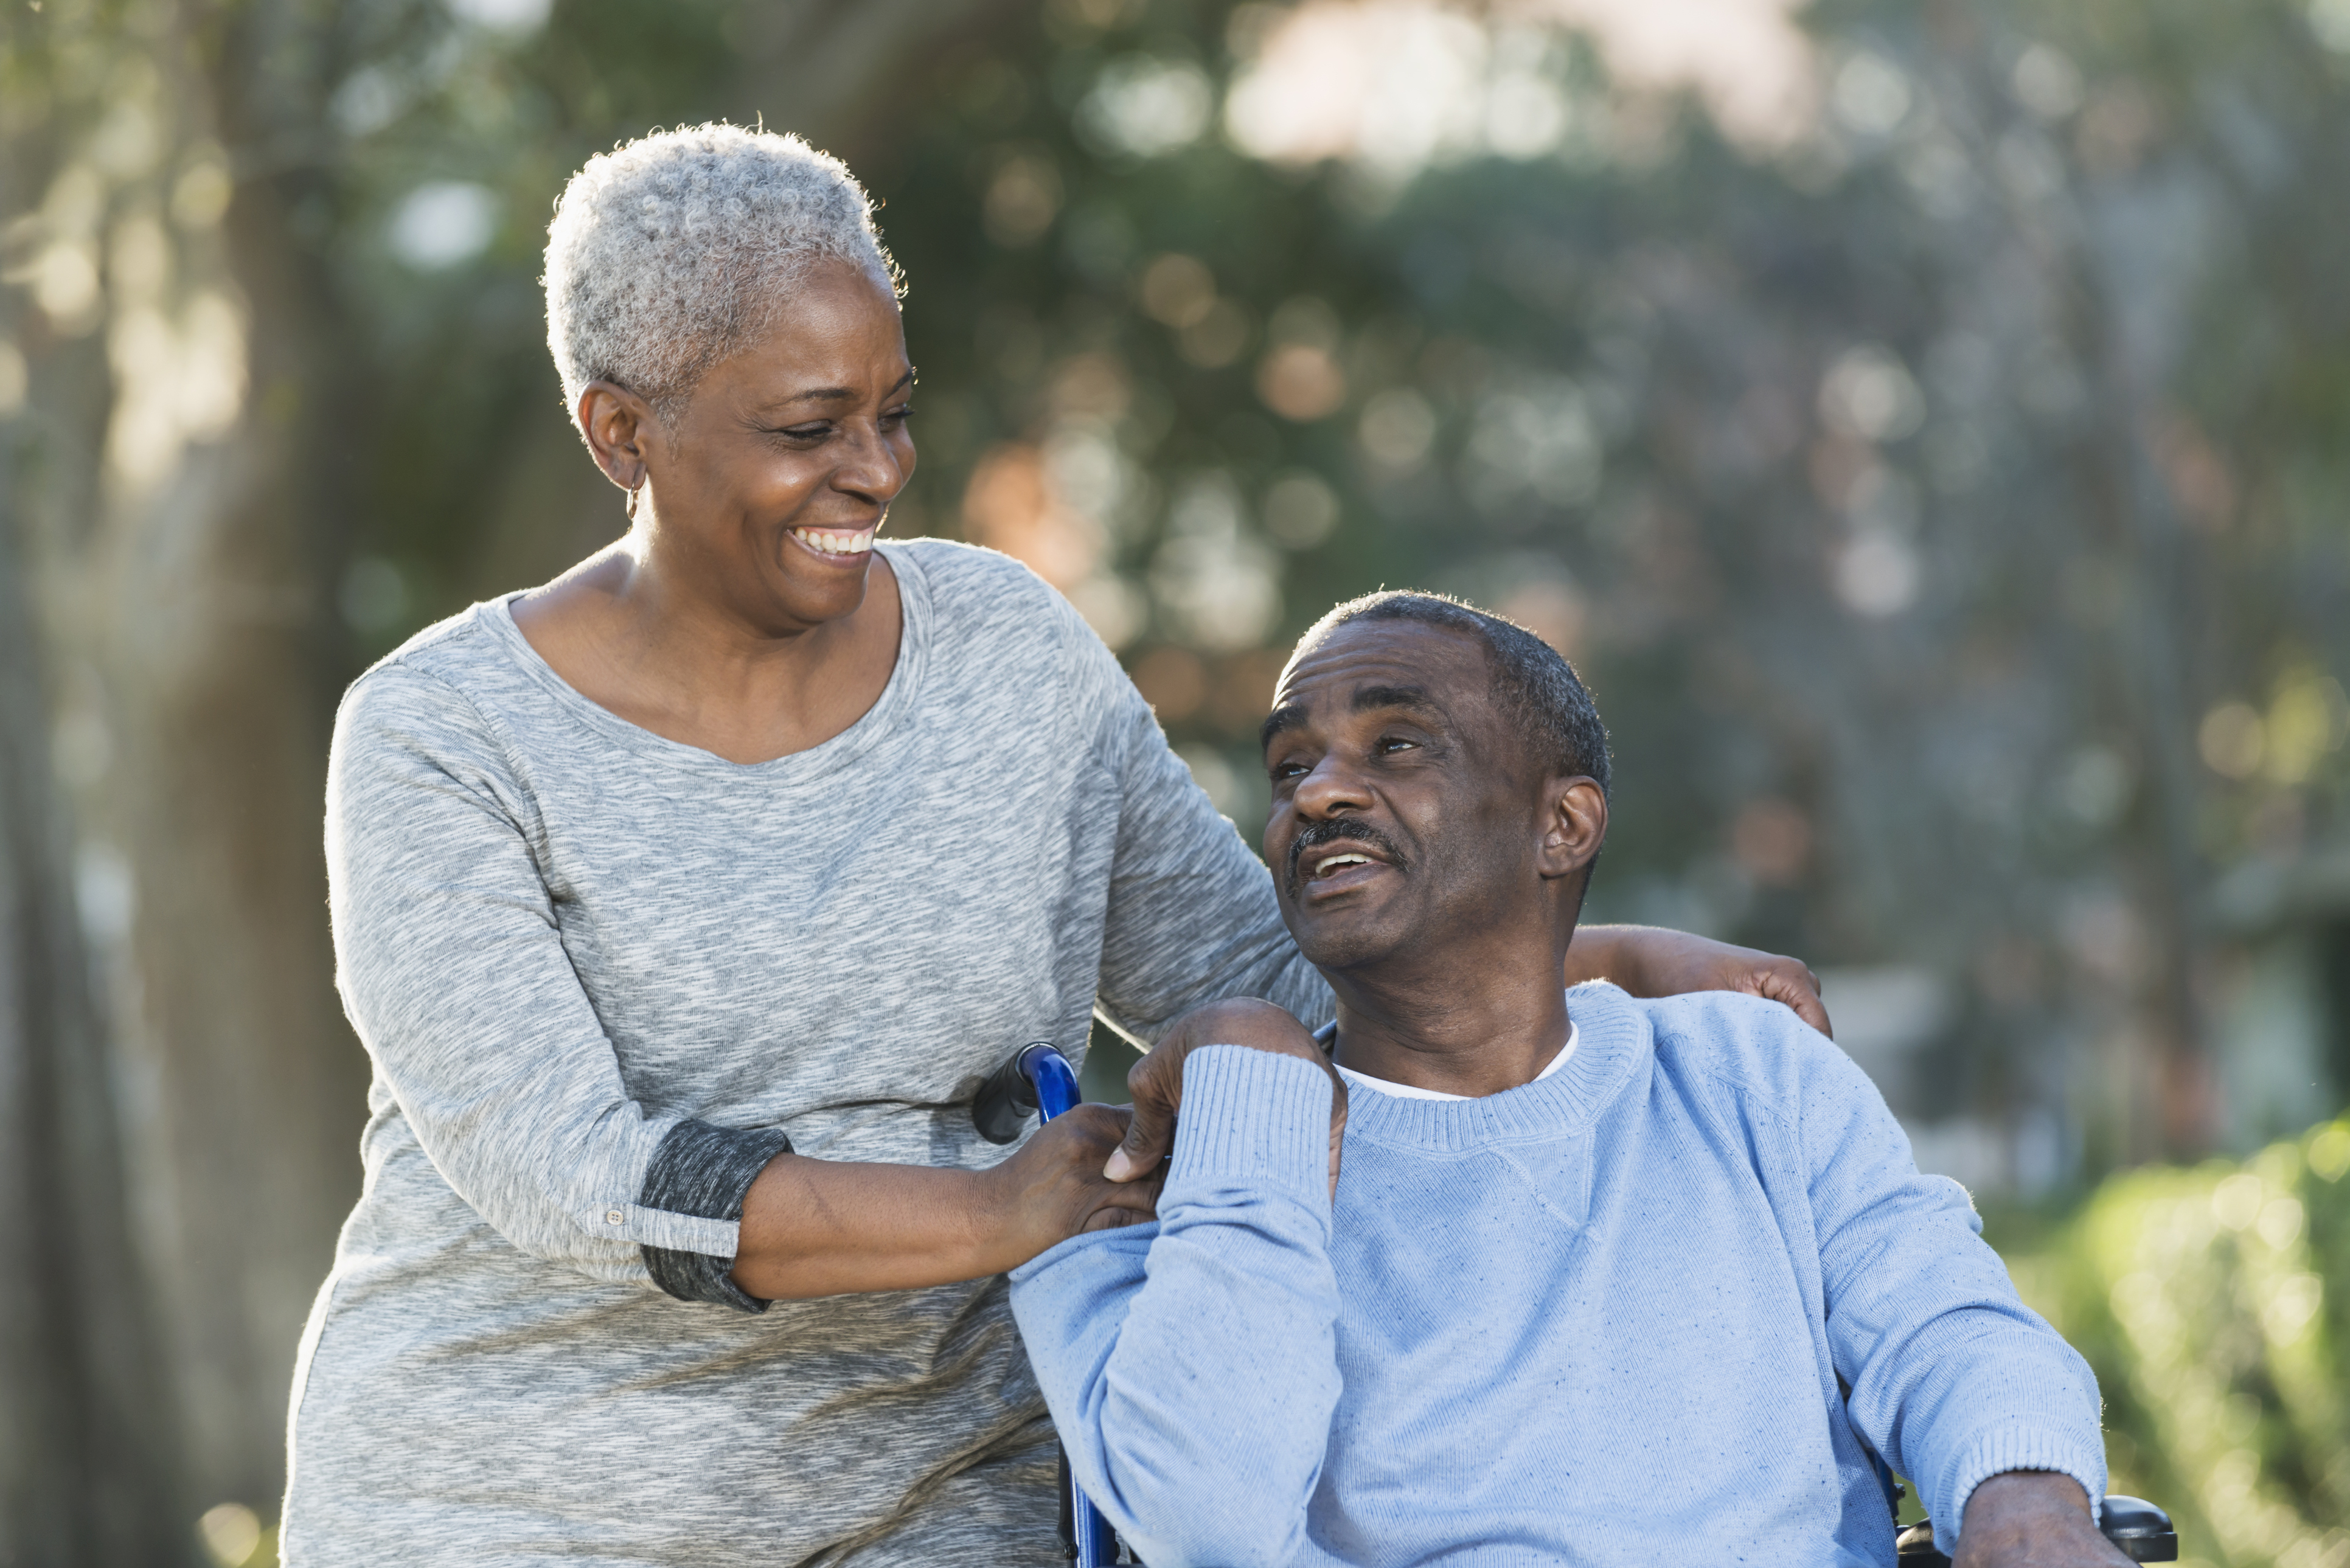 Senior caregiving is no easy task. Here, a senior woman cares for her senior husband.